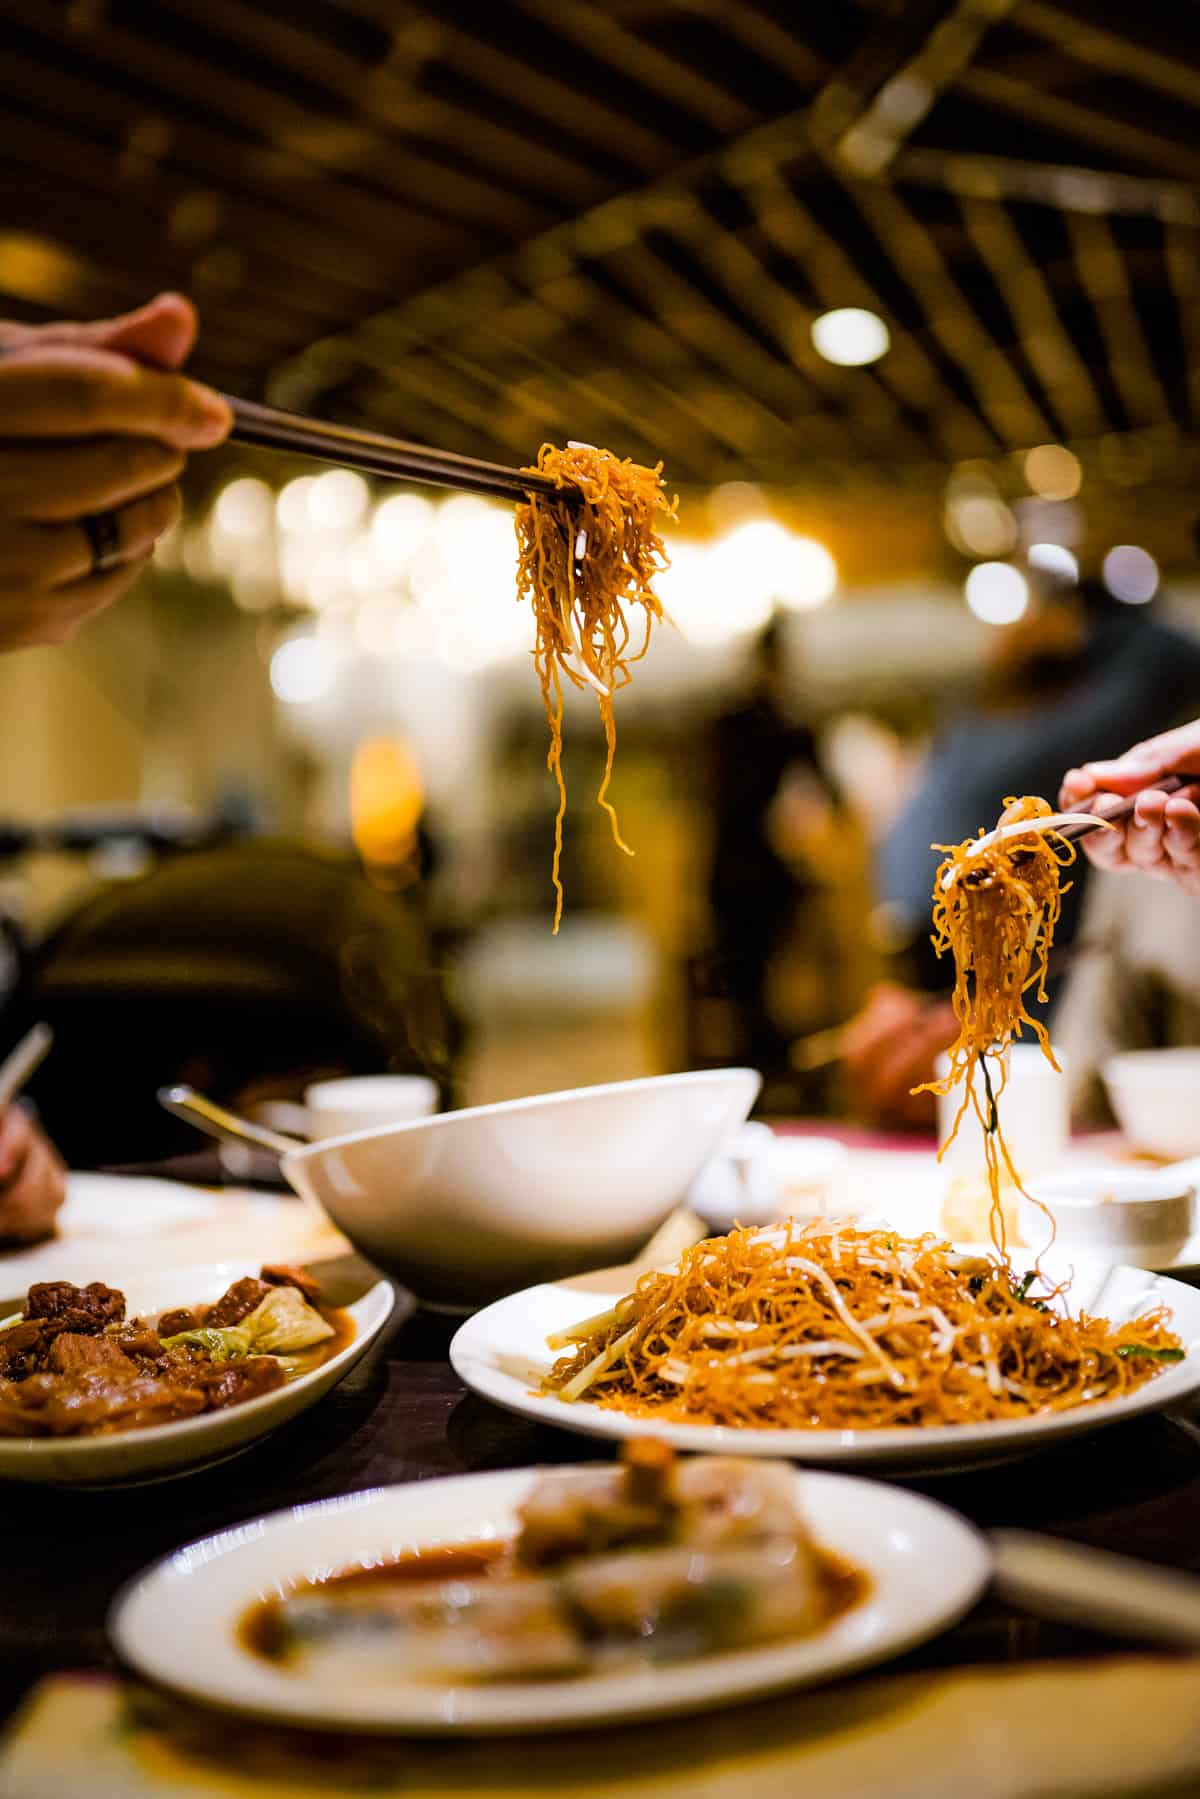 singapore rice noodles on a table in a restaurant with lots of other dishes. Two hands can be seen lifting noodles with chopsticks.